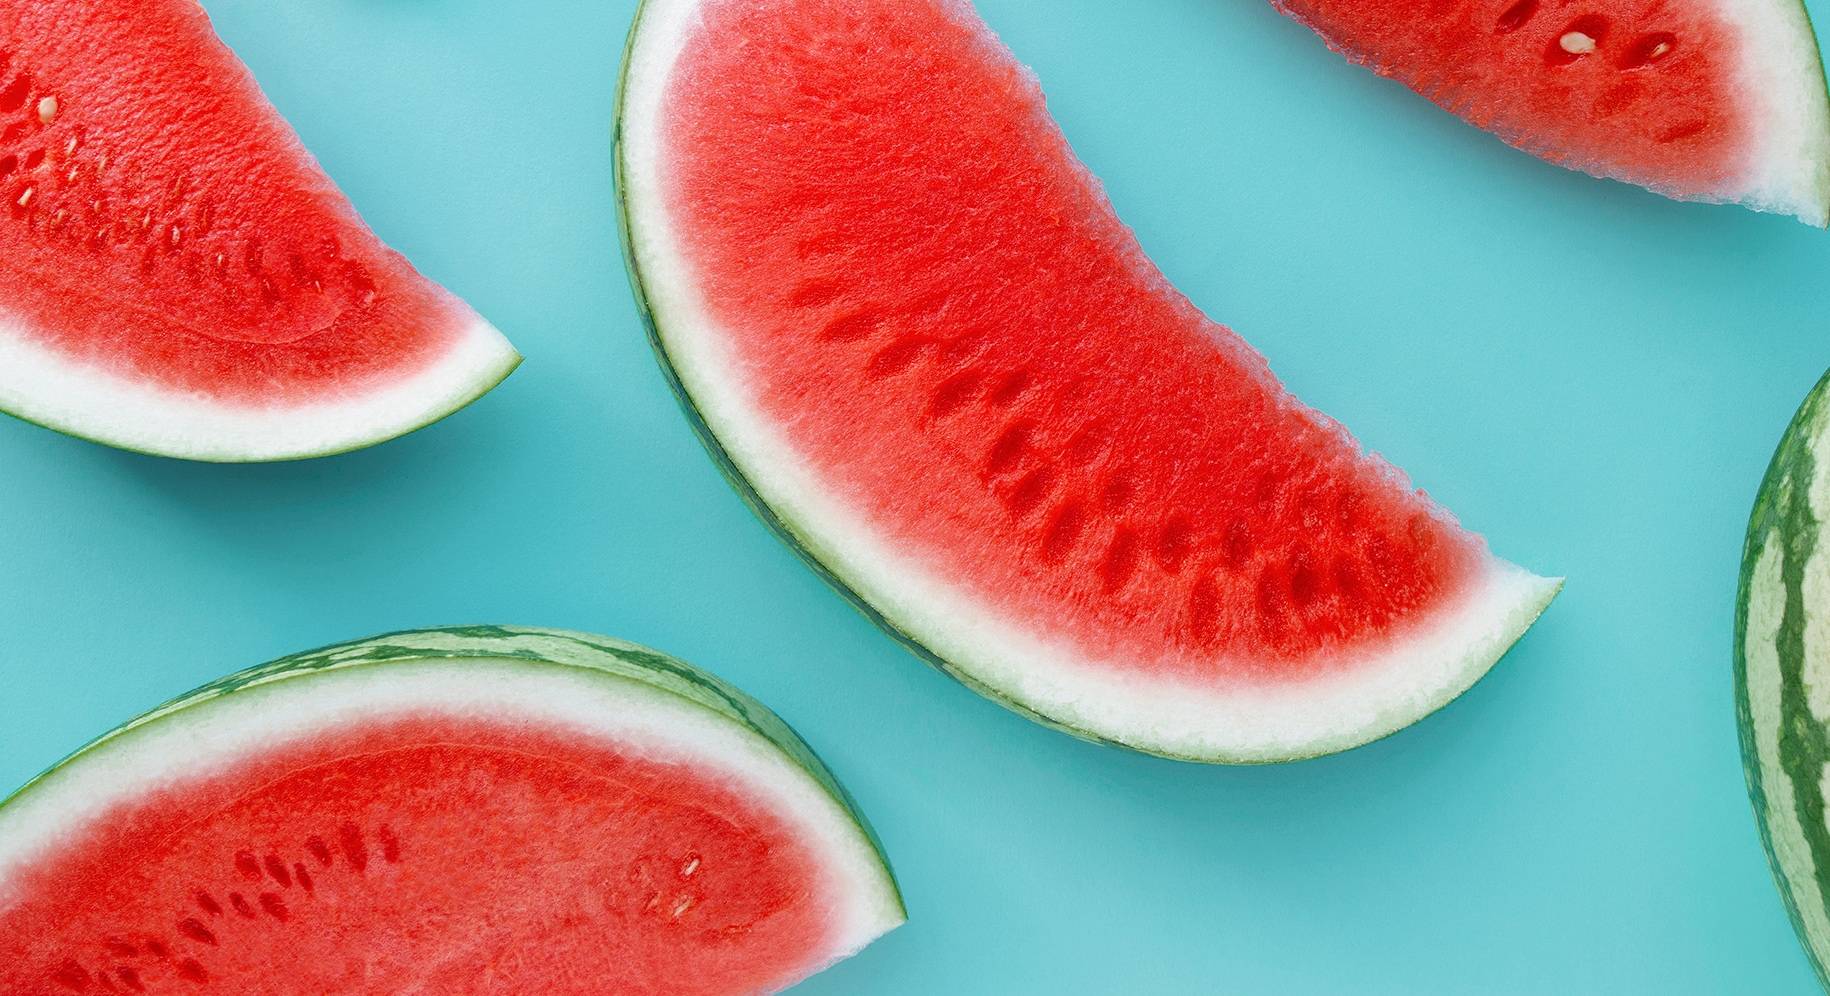 slices of watermelon on a table